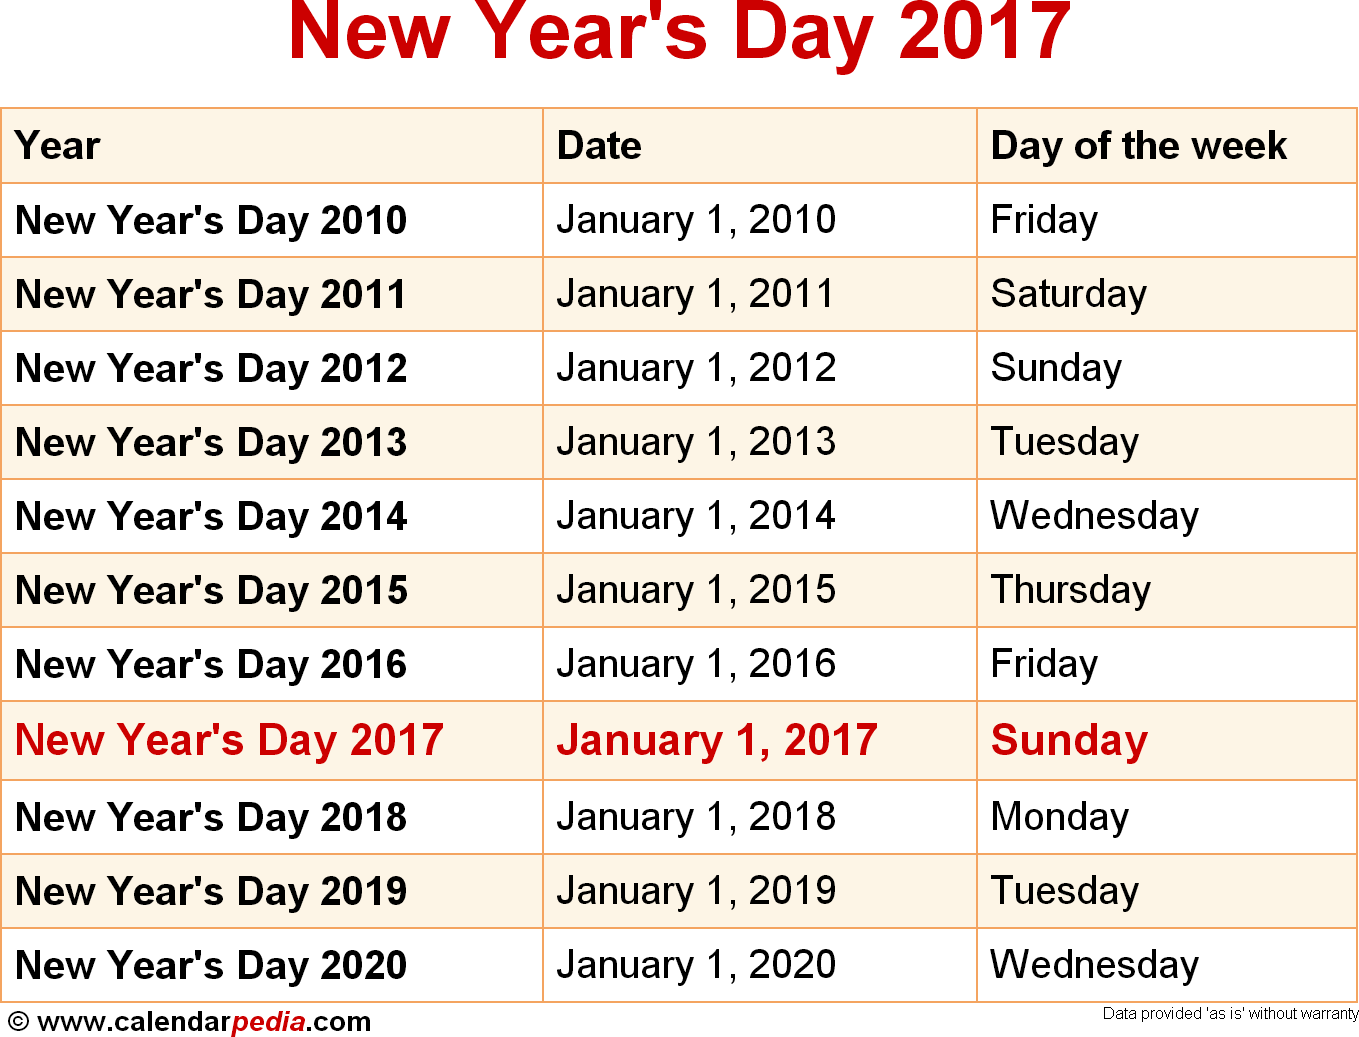 New Year's Day 2017